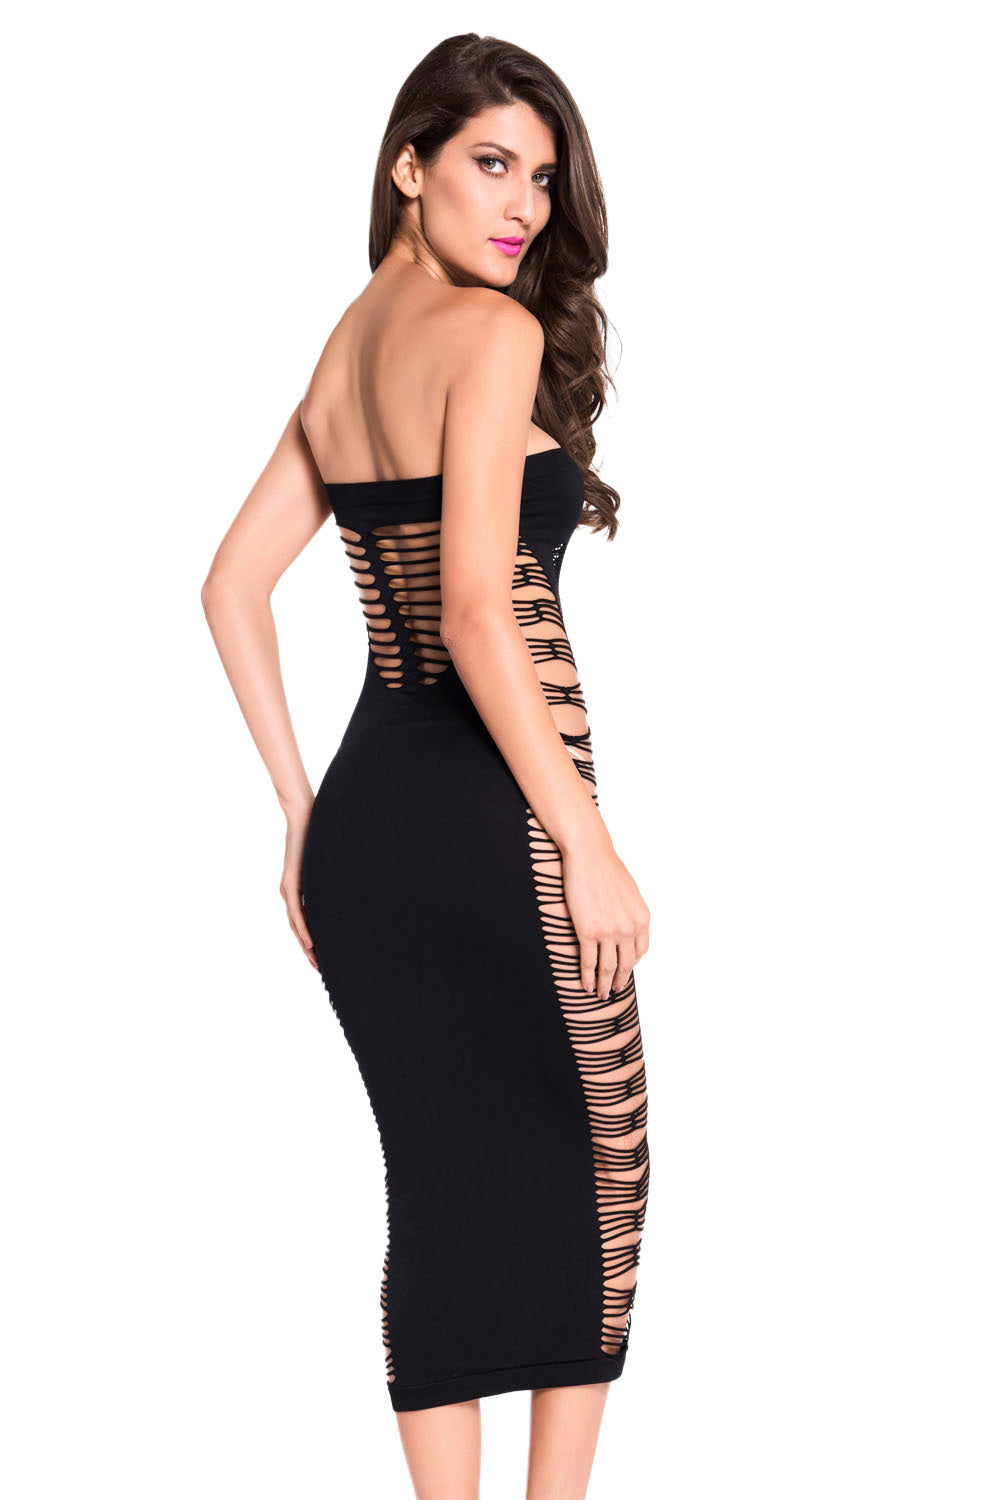 e679bafce0d Sexy Big Spender Long Black Tube Dress – SEXY AFFORDABLE CLOTHING